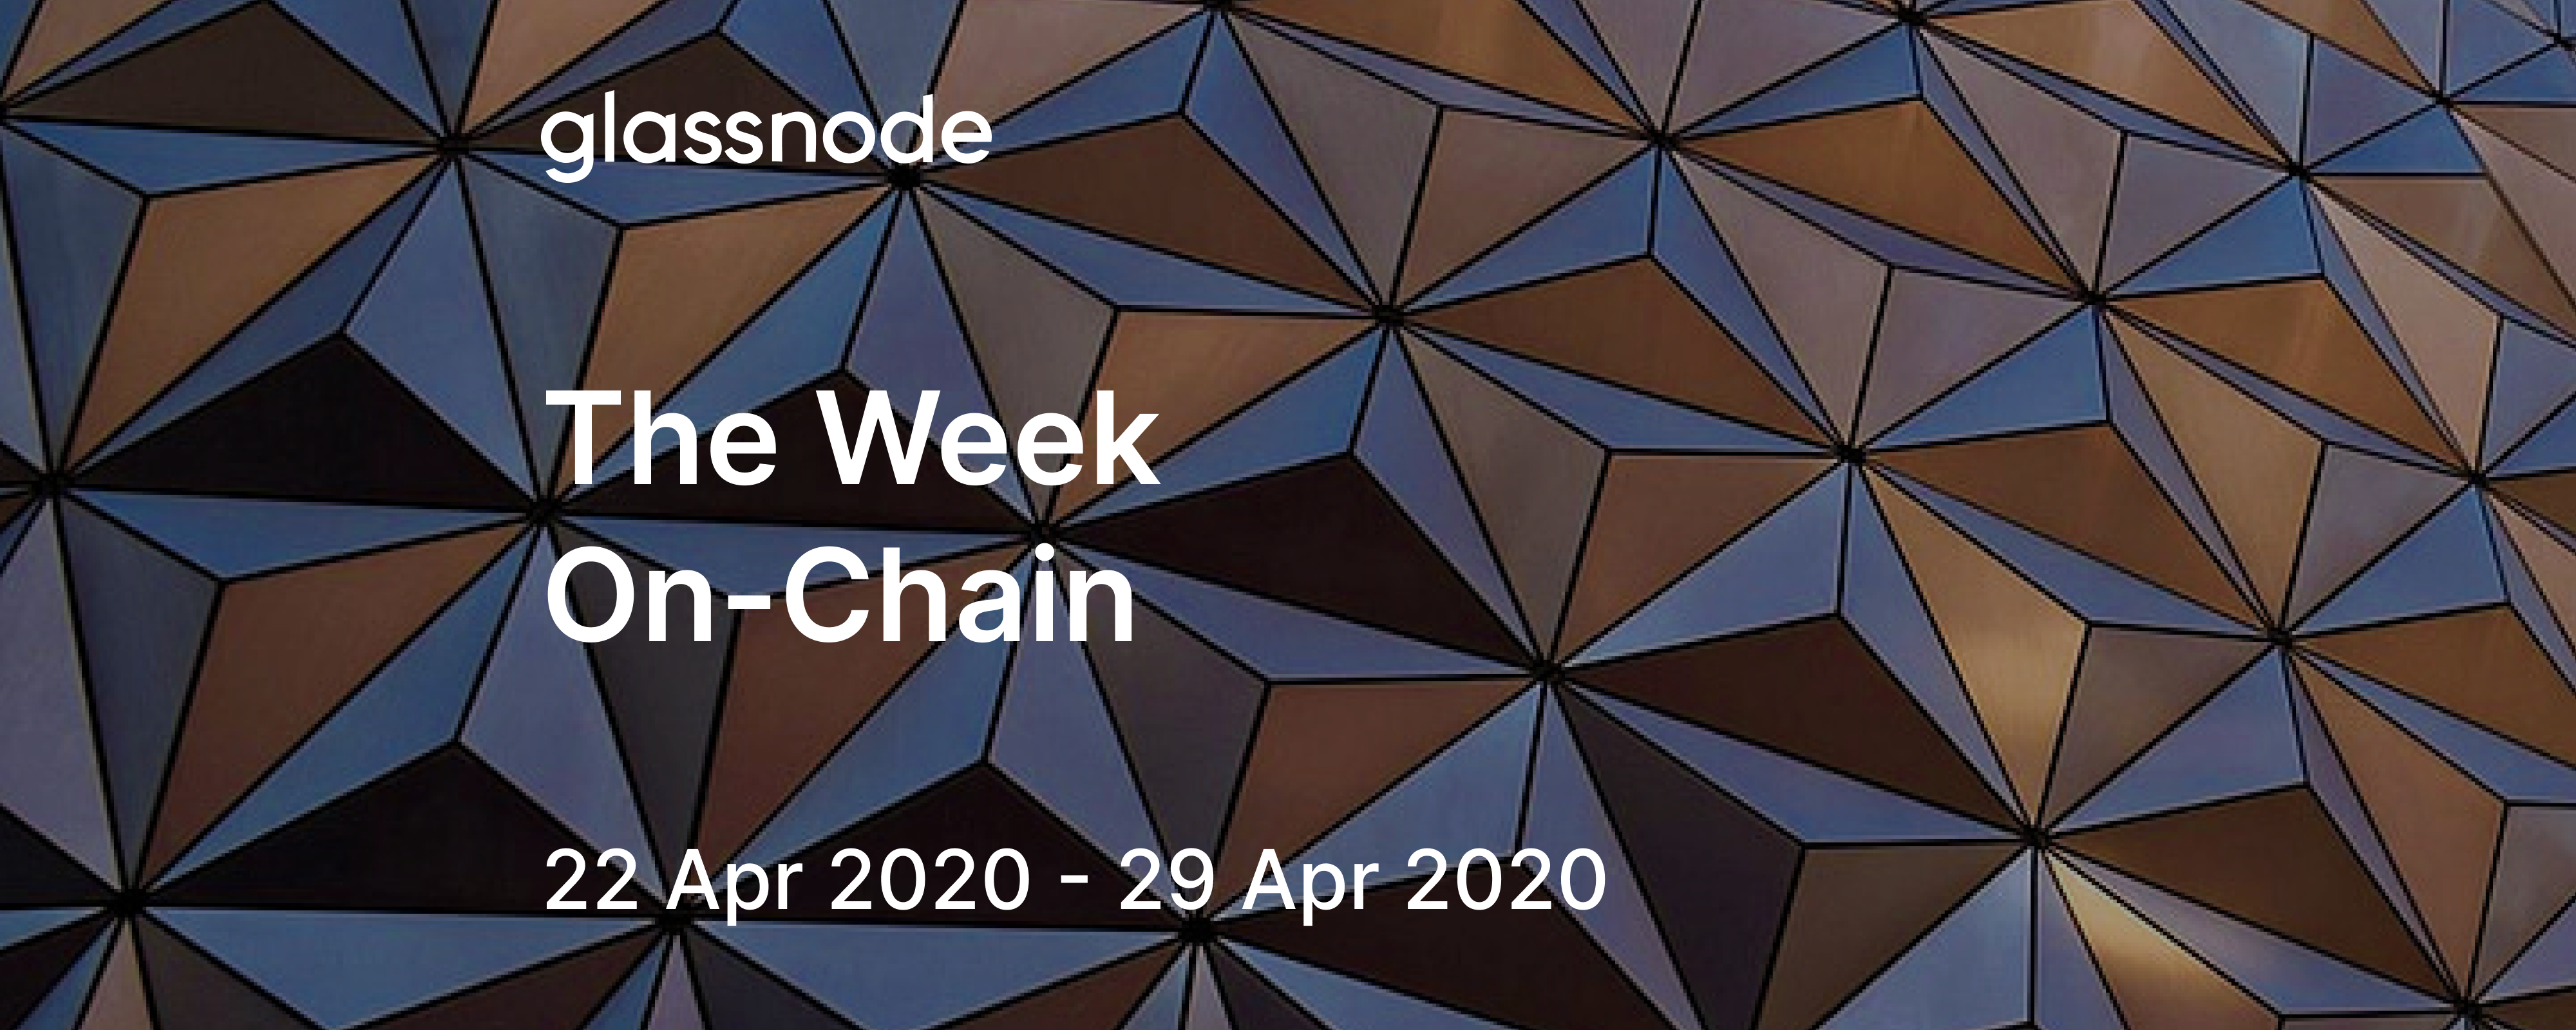 The Week On-Chain (22 Apr 2020 - 29 Apr 2020)